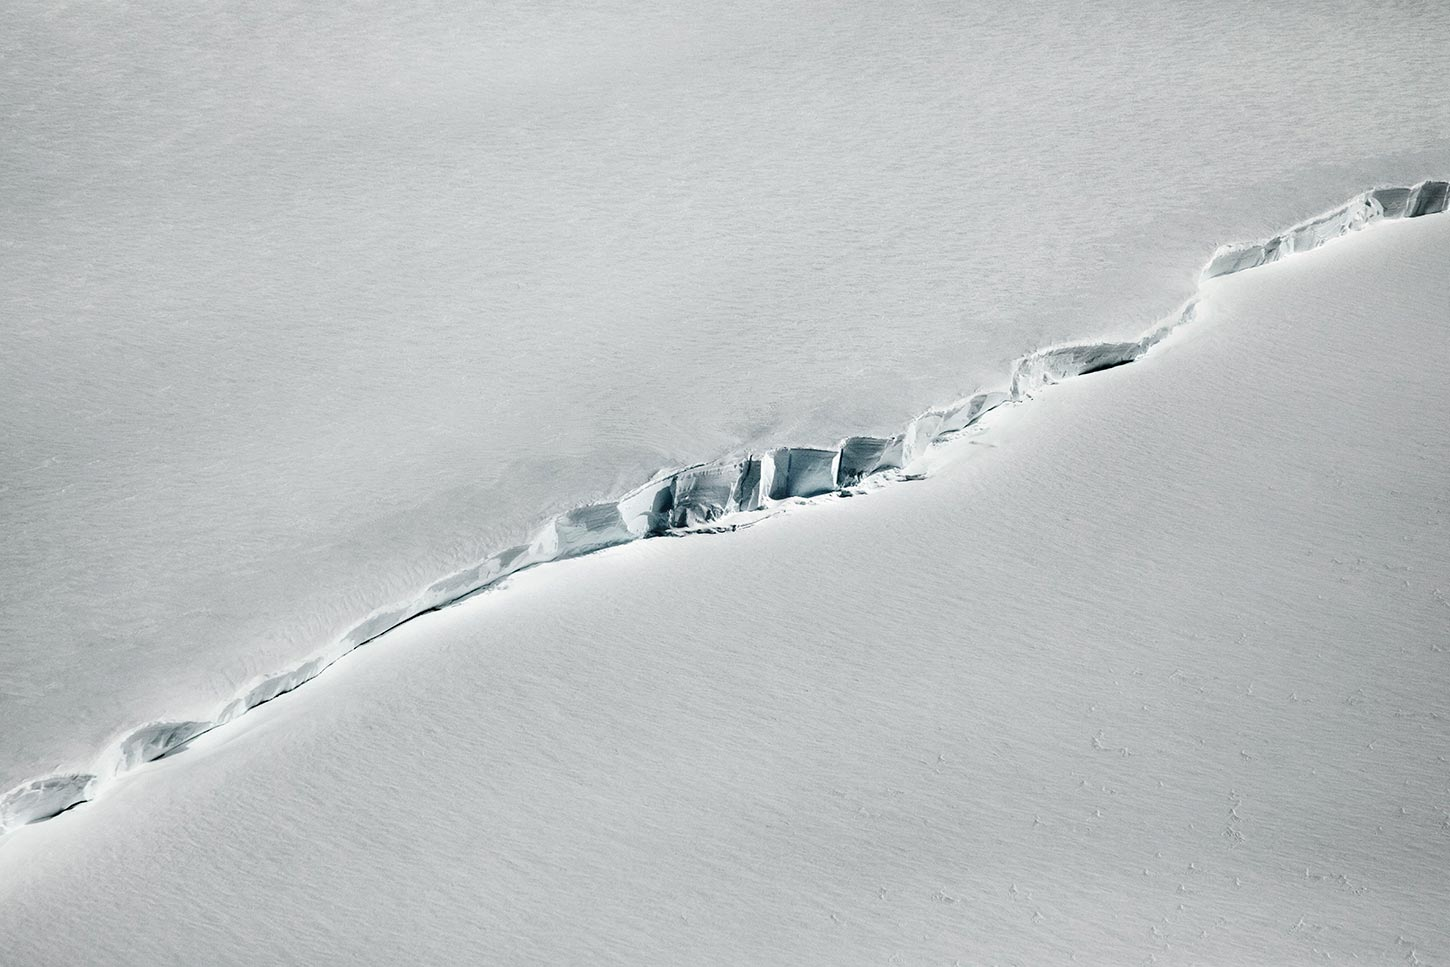 NASA IceBridge flight surveying climate change. Antarctica. 2017.